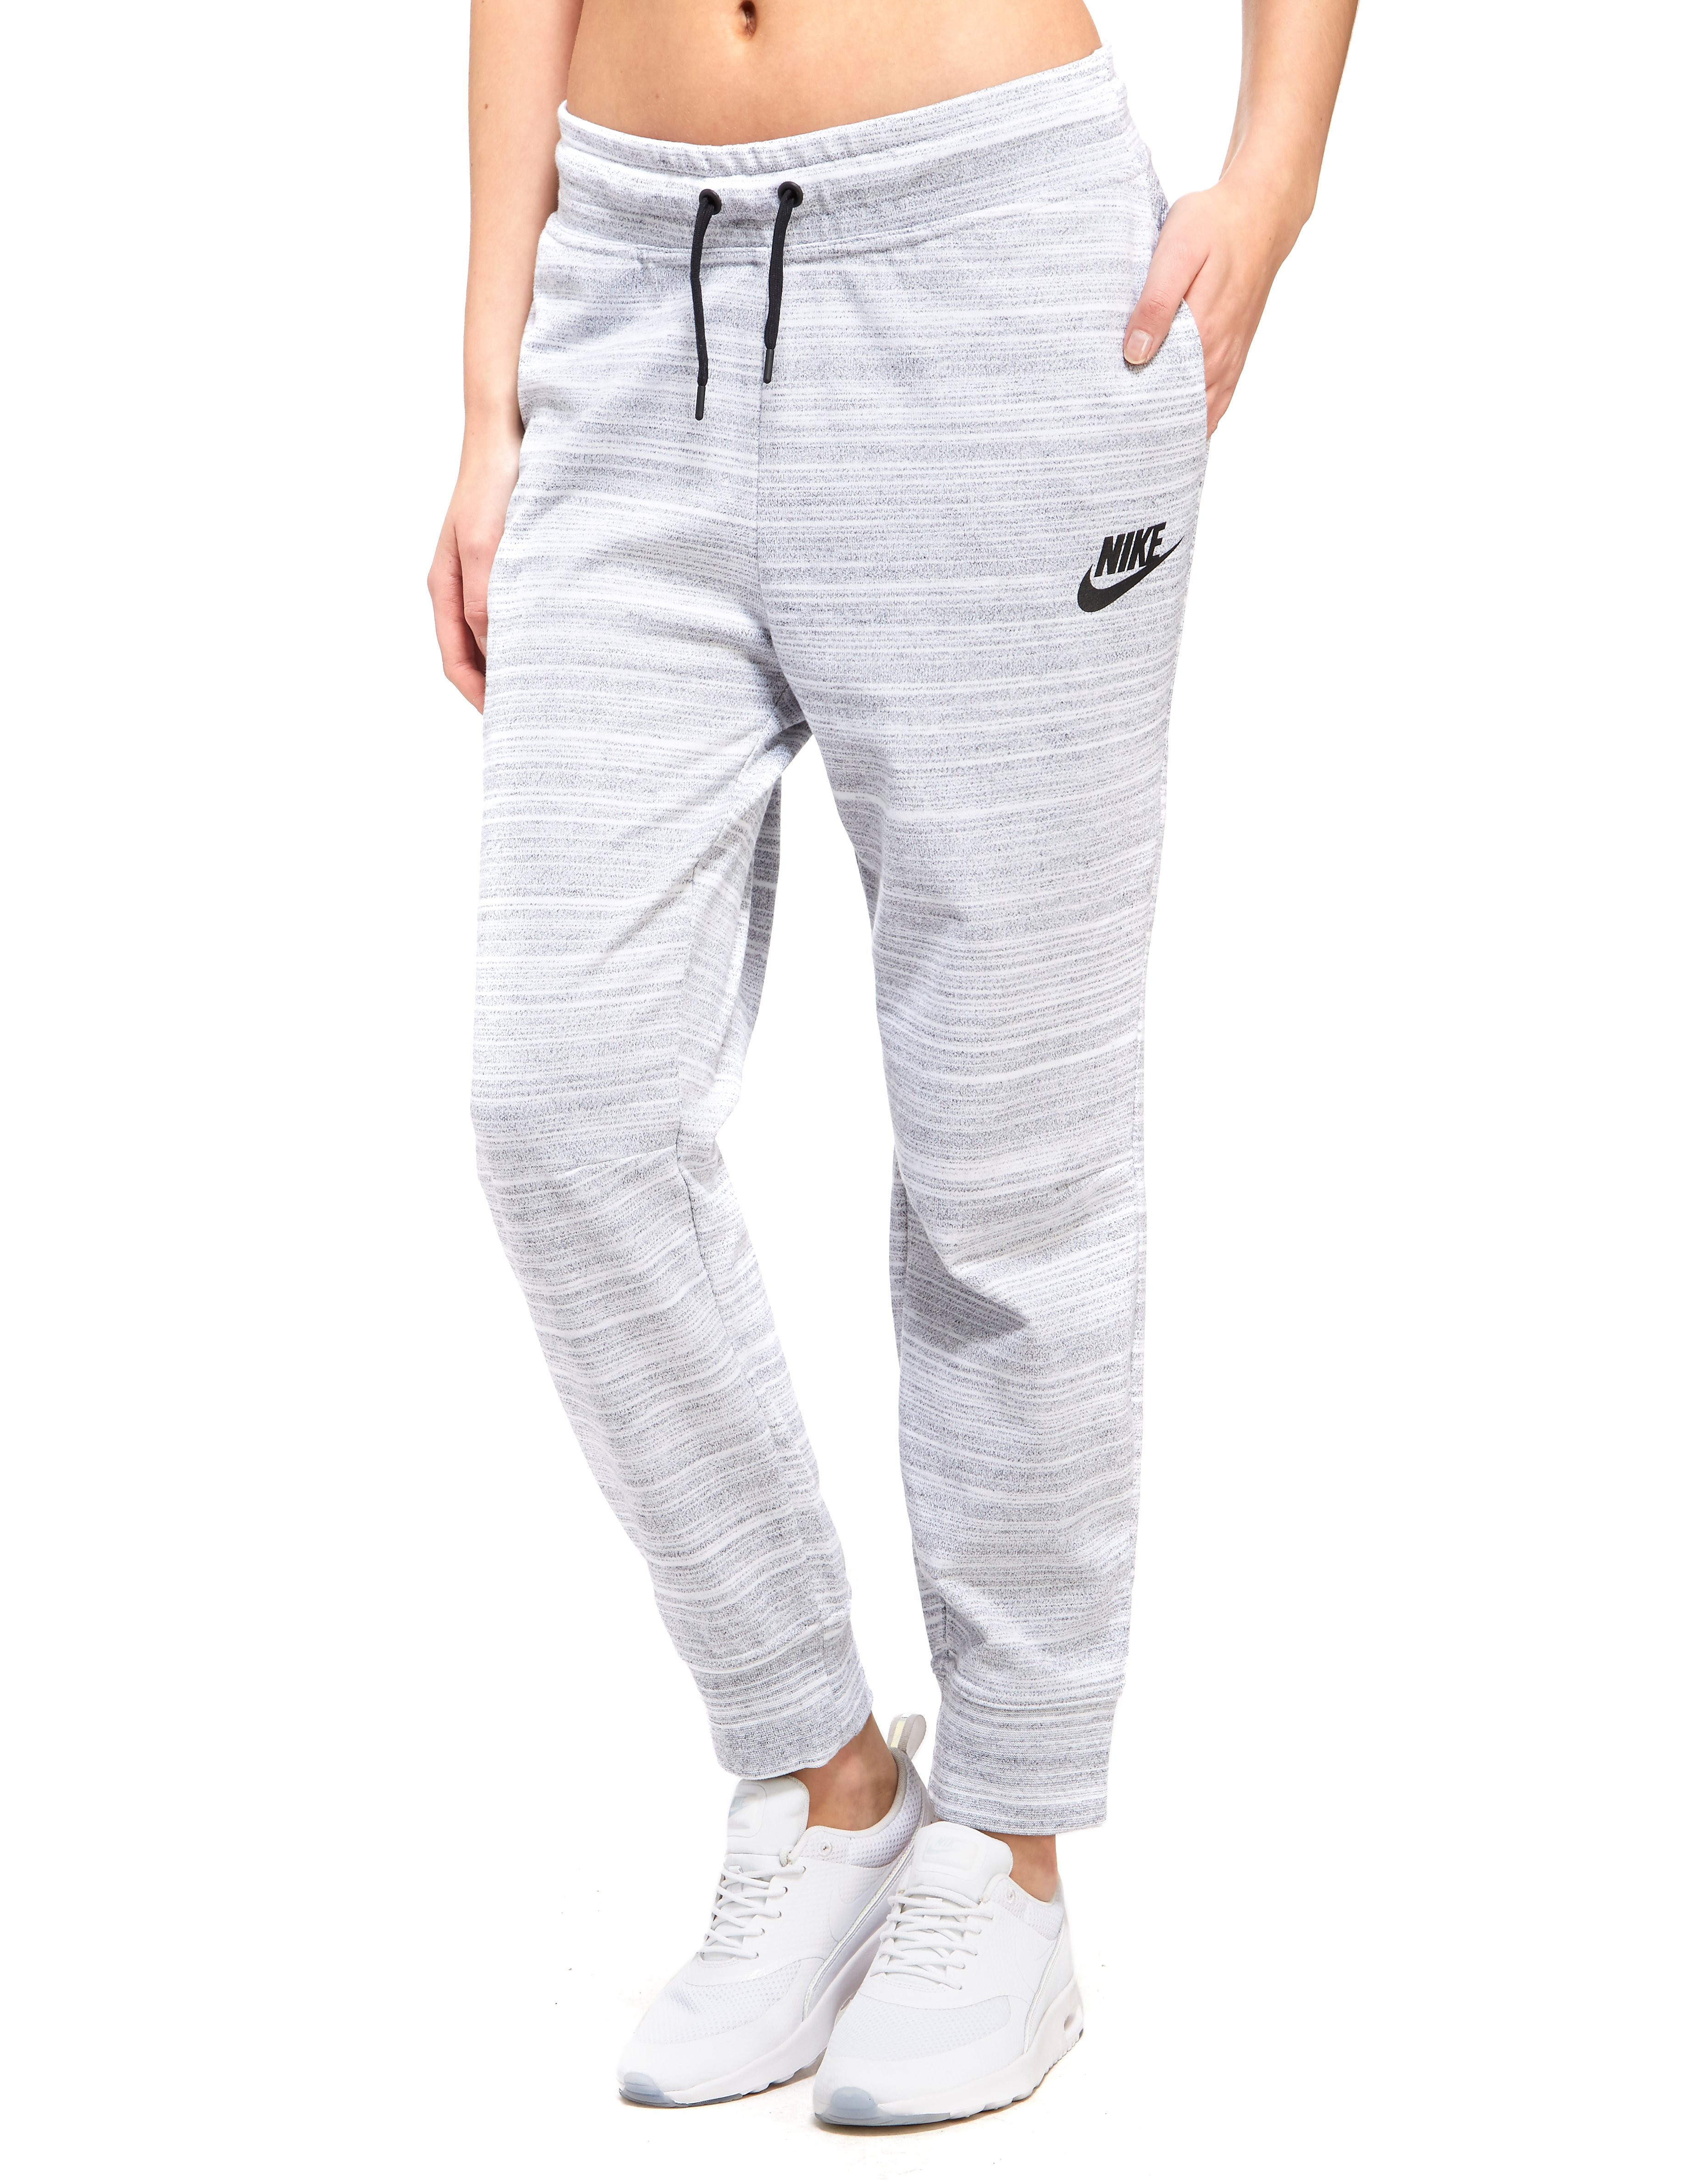 Nike Advance Jogging Pants